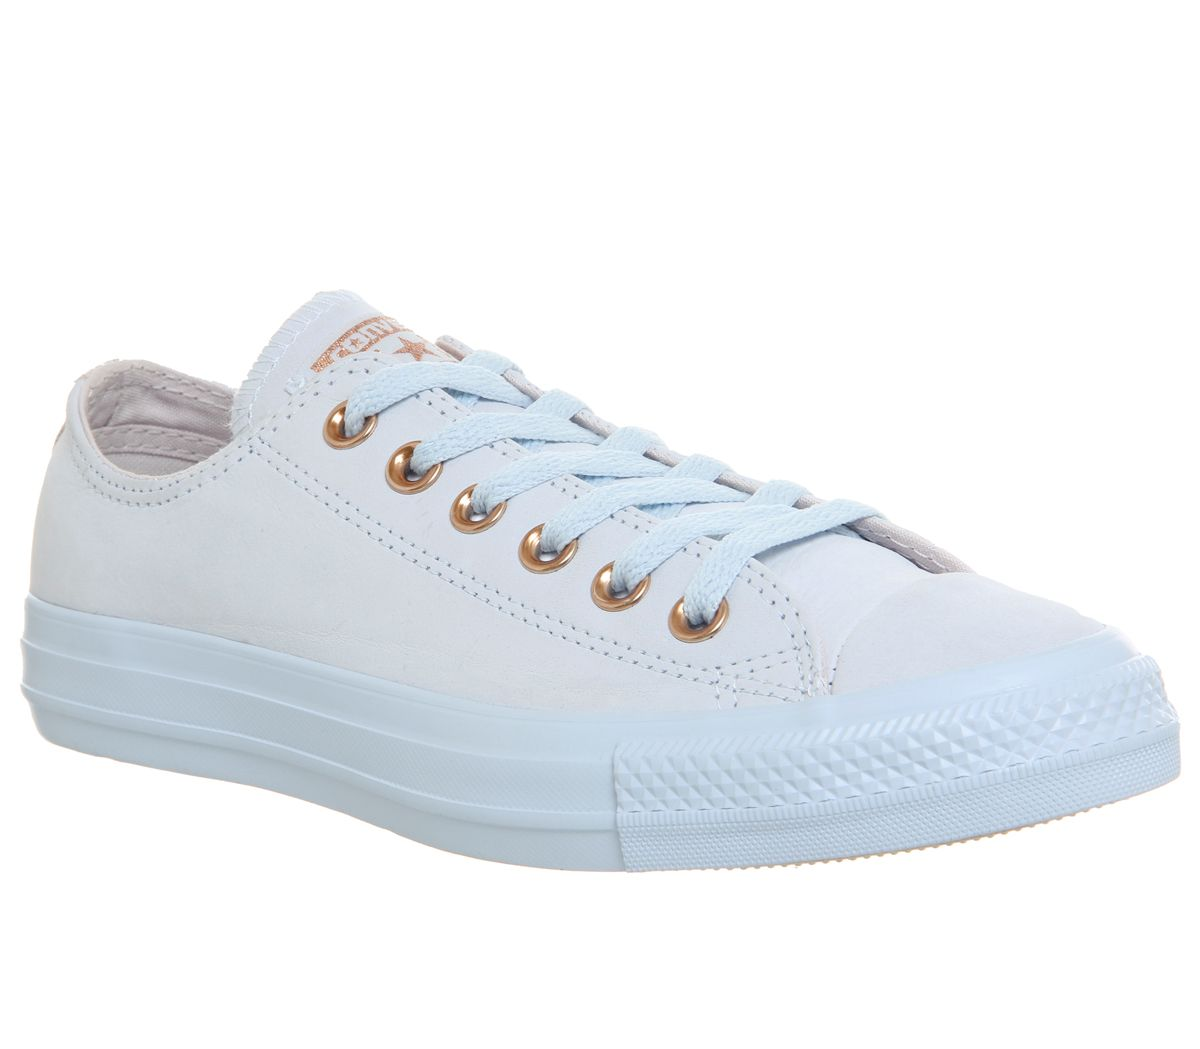 Converse All Star Low Leather Trainers, Pale Blue